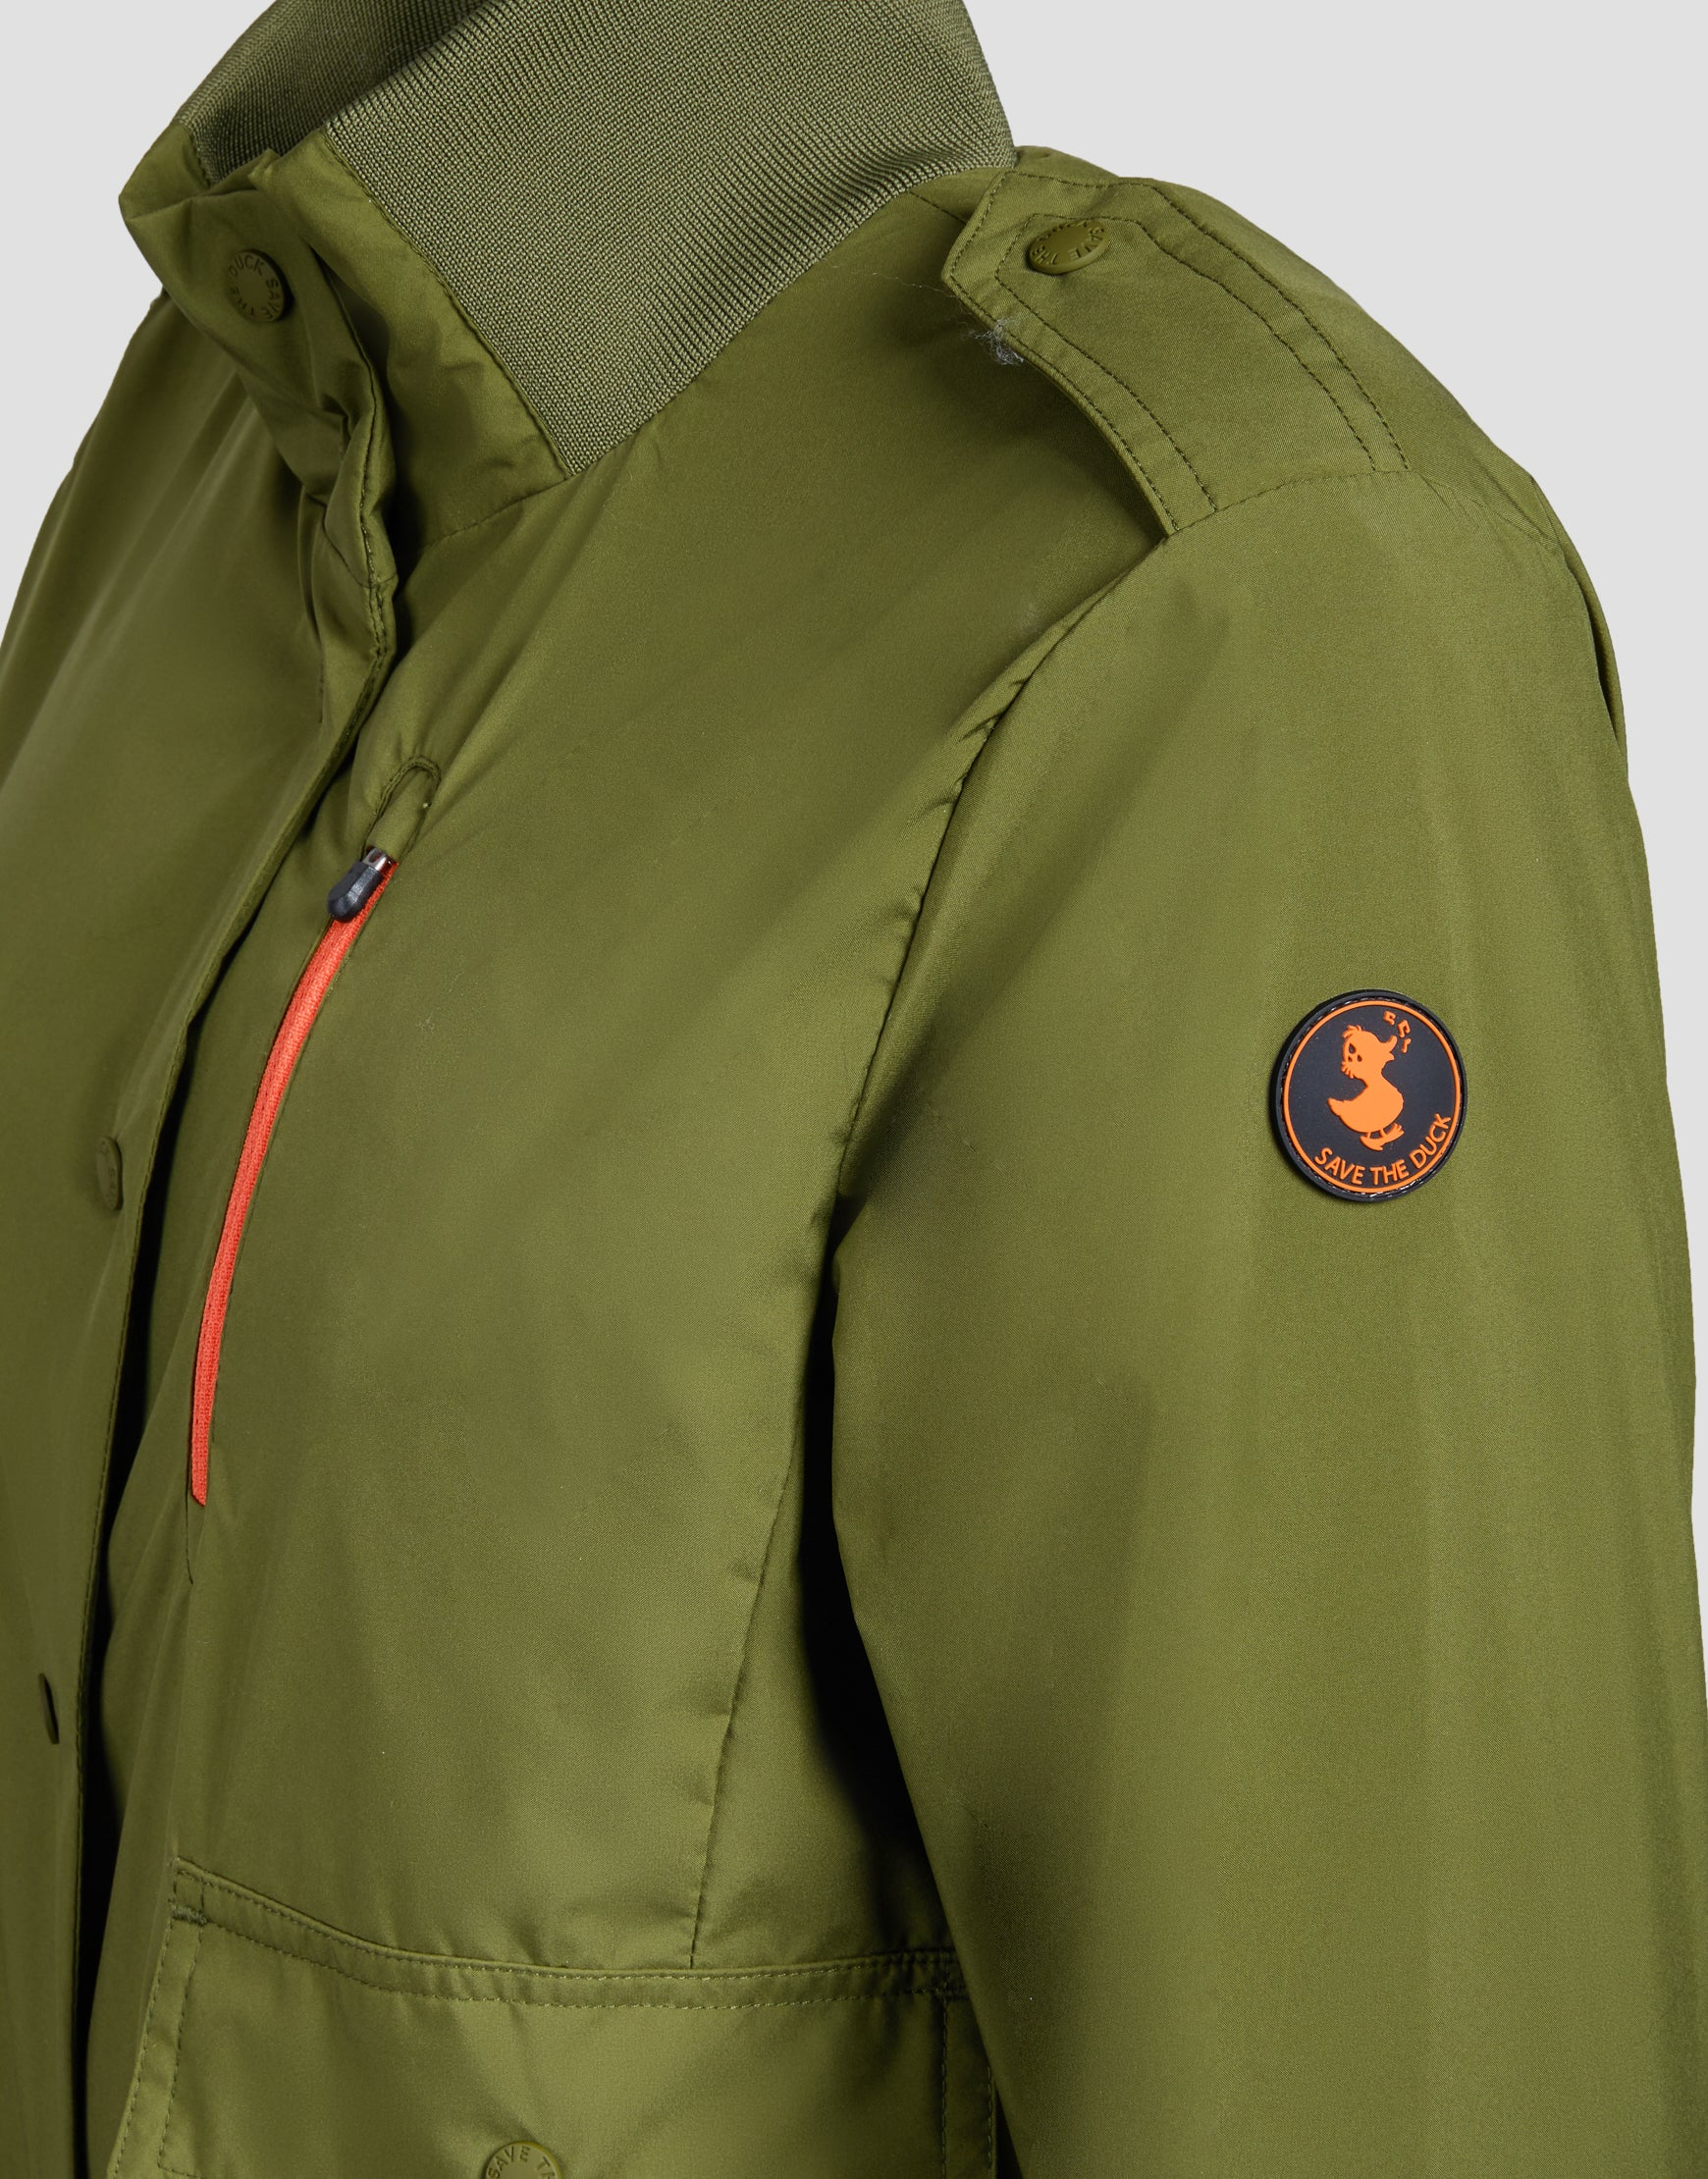 bc728752 Save The Duck Womens Jacket - Save the Duck